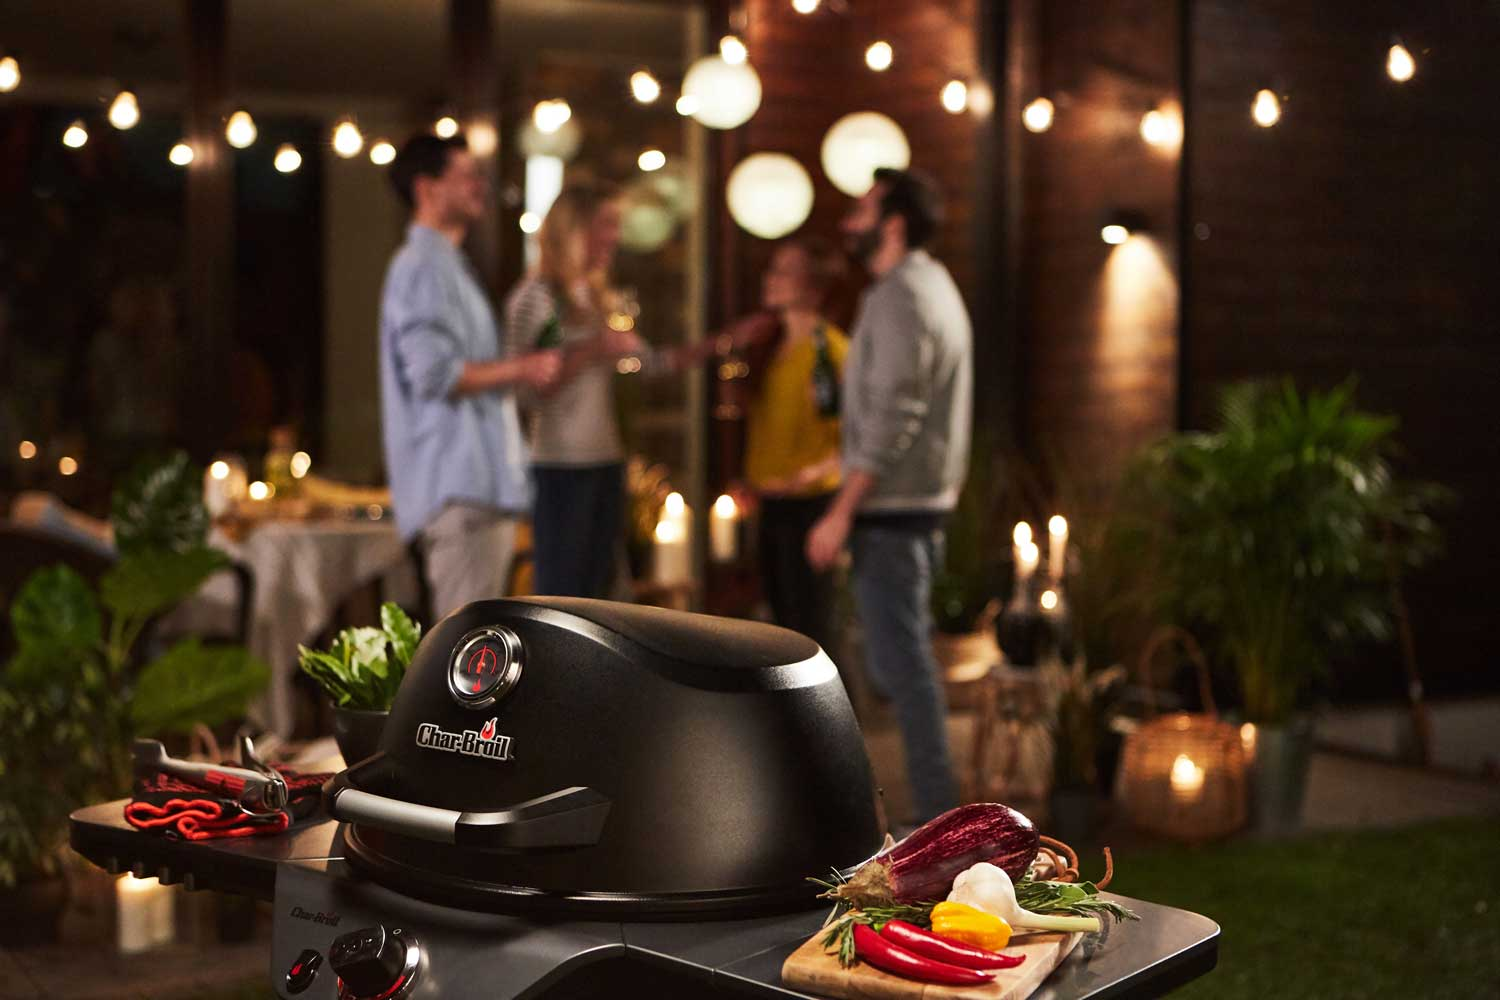 char-broil-offers-a-wide-range-of-flexible-and-innovative-grills-to-make-bbq-cooking-simple-fun-and-delicious